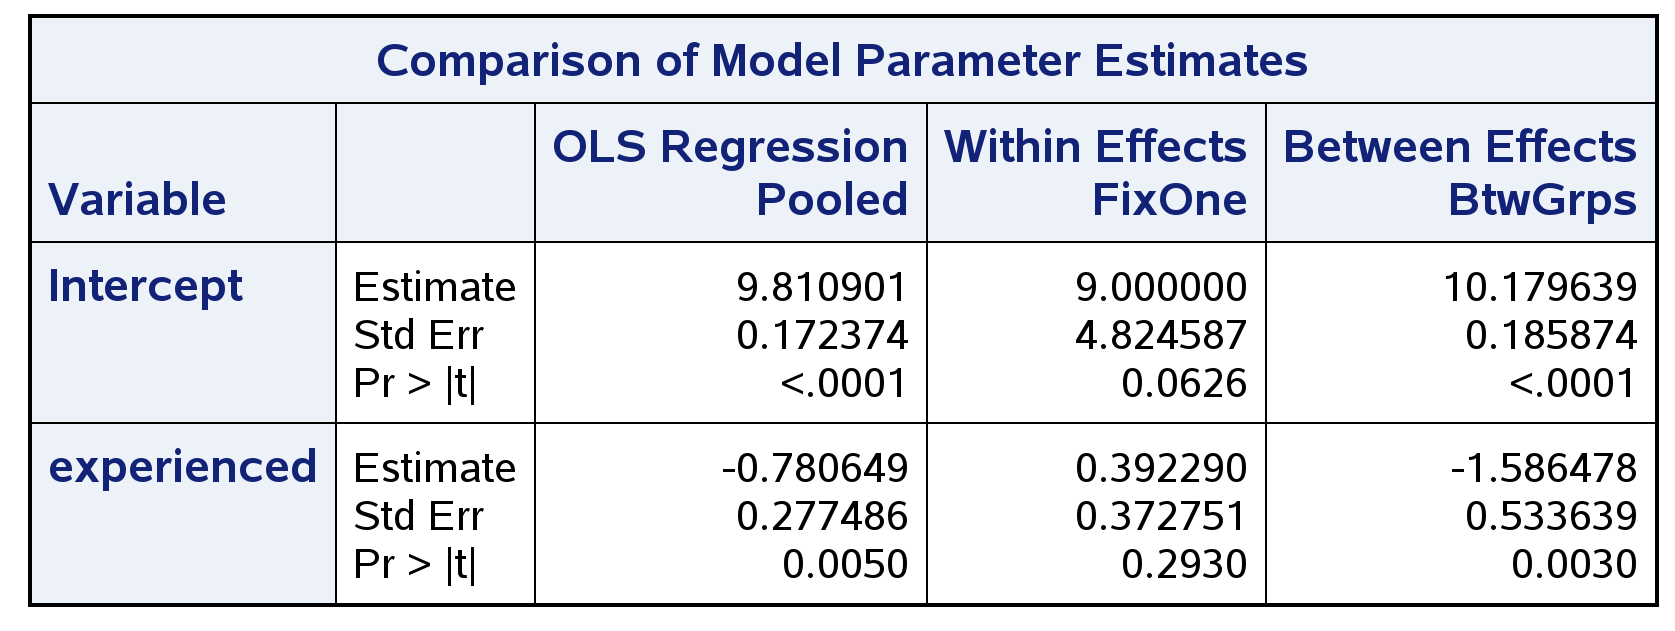 comparison of model parameter estimates